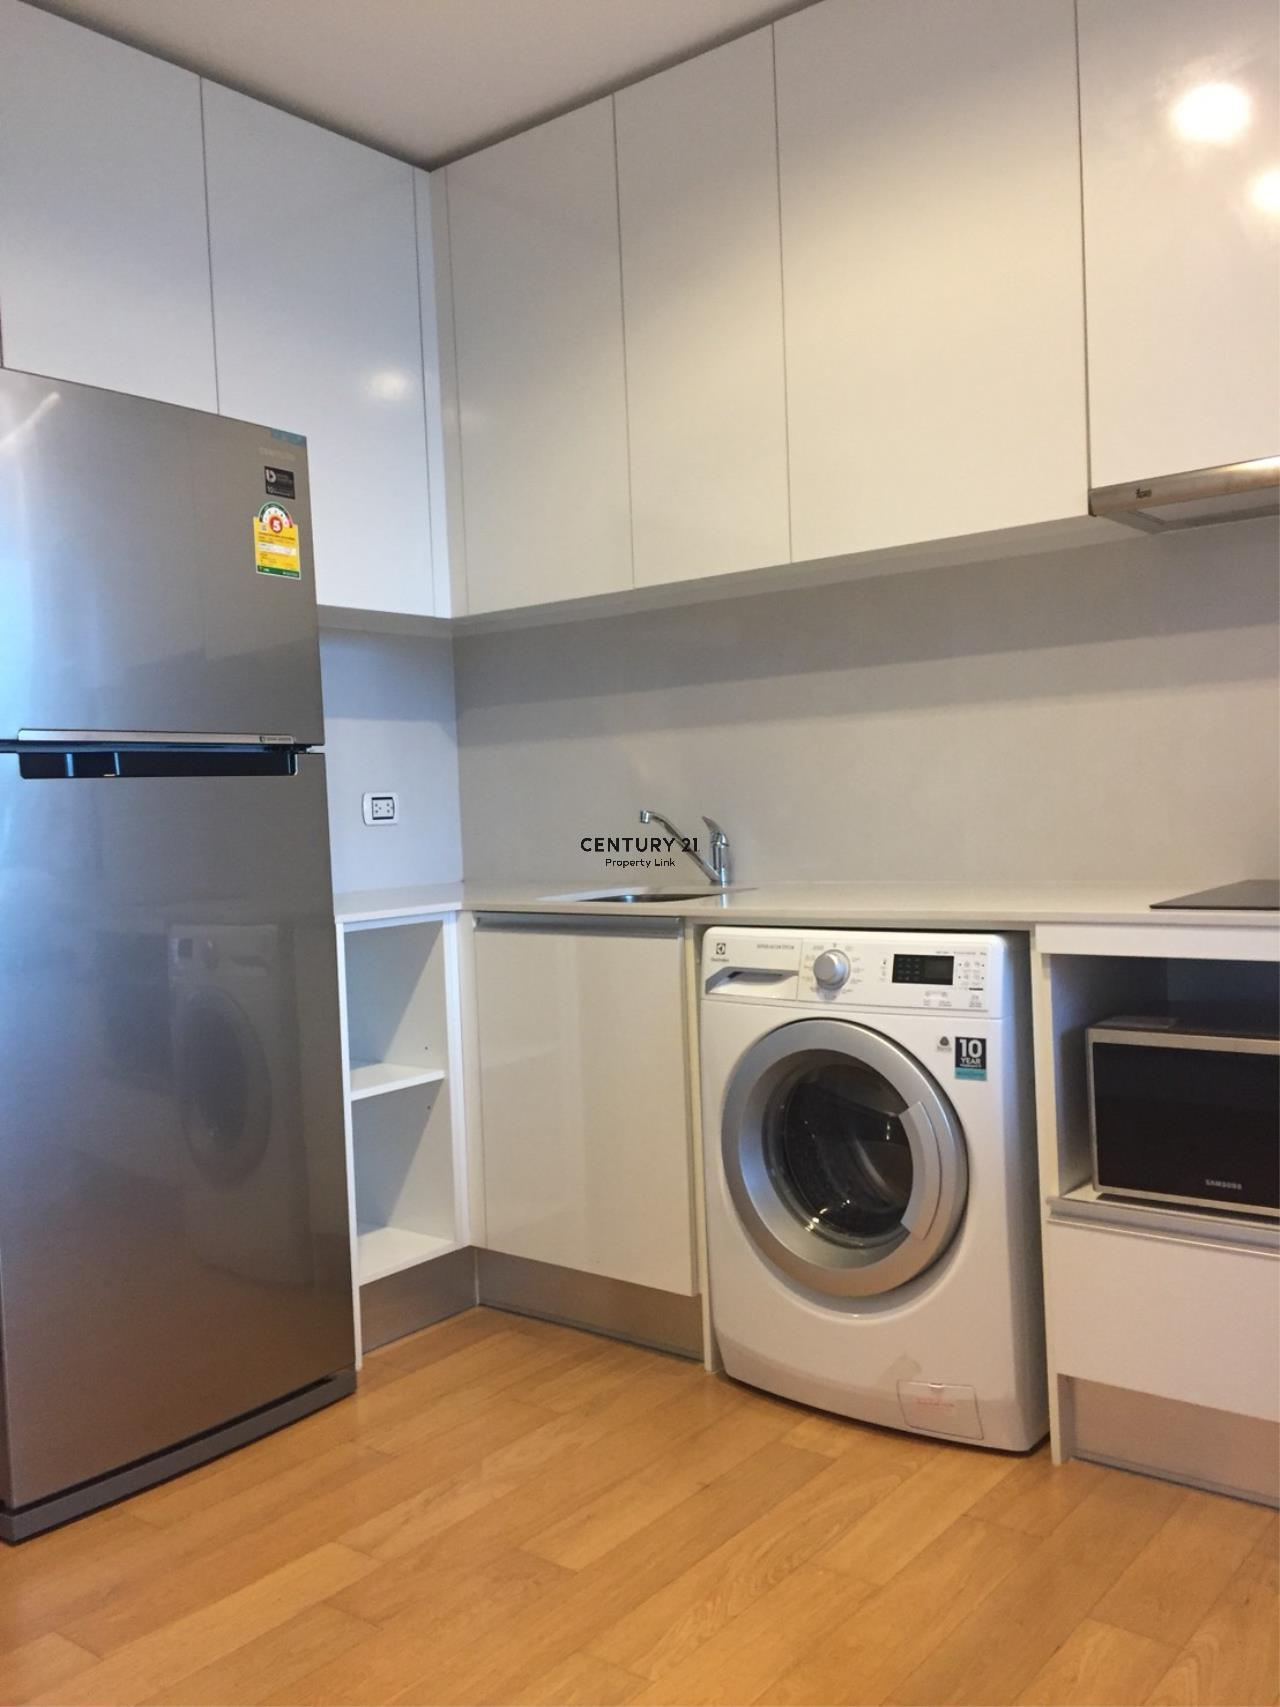 Century21 Property Link Agency's 39-CC-61448 Equinox Phahol-Vibha HIGH CLASS Room For Rent Near MRT @Chatuchak Park BTS @ Mo Chit Phahonyothin Road 2 Bedroom Rental 40,000 THB./ month  10